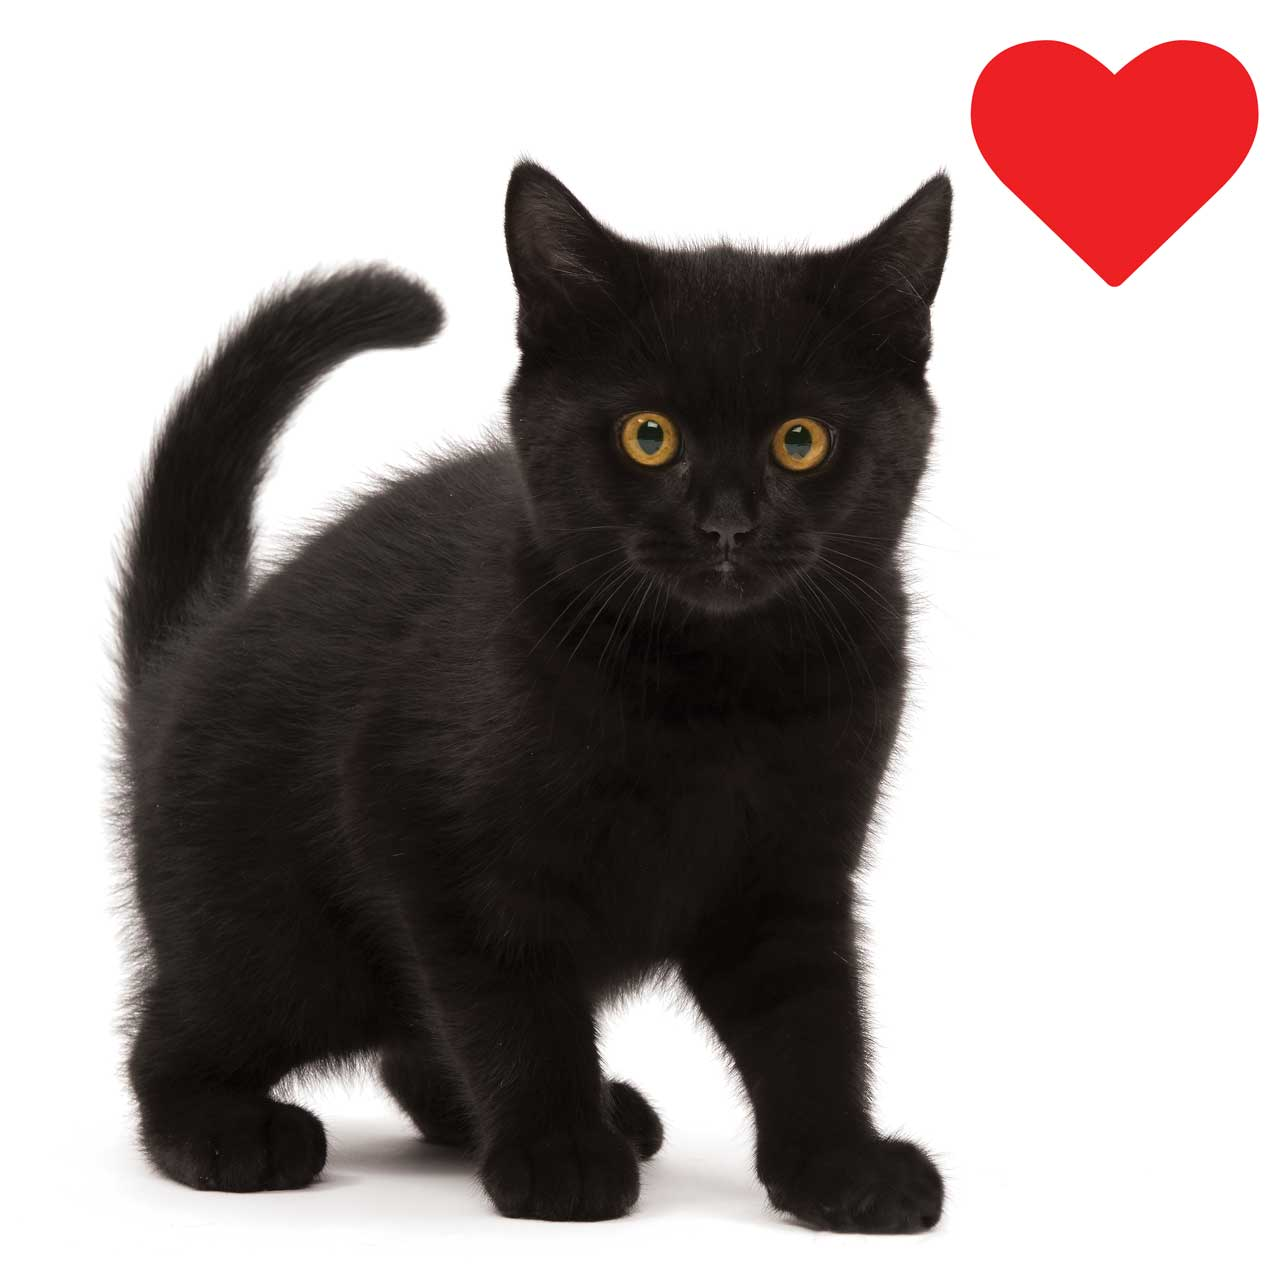 Cute black kitten with a heart next to it